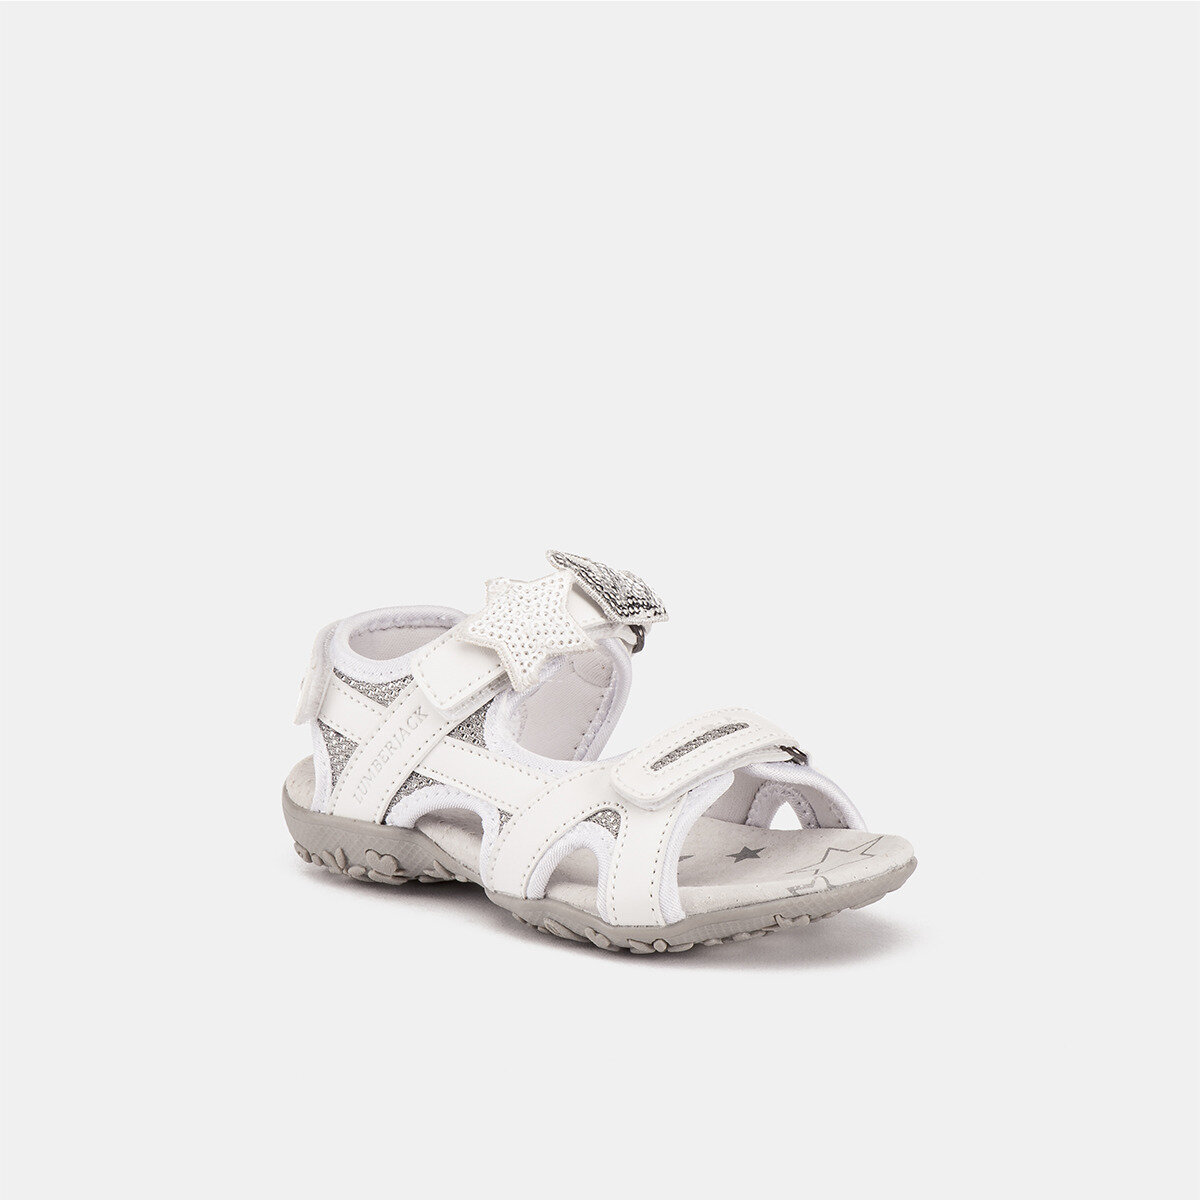 LINDA WHITE/SILVER Girl Sandals